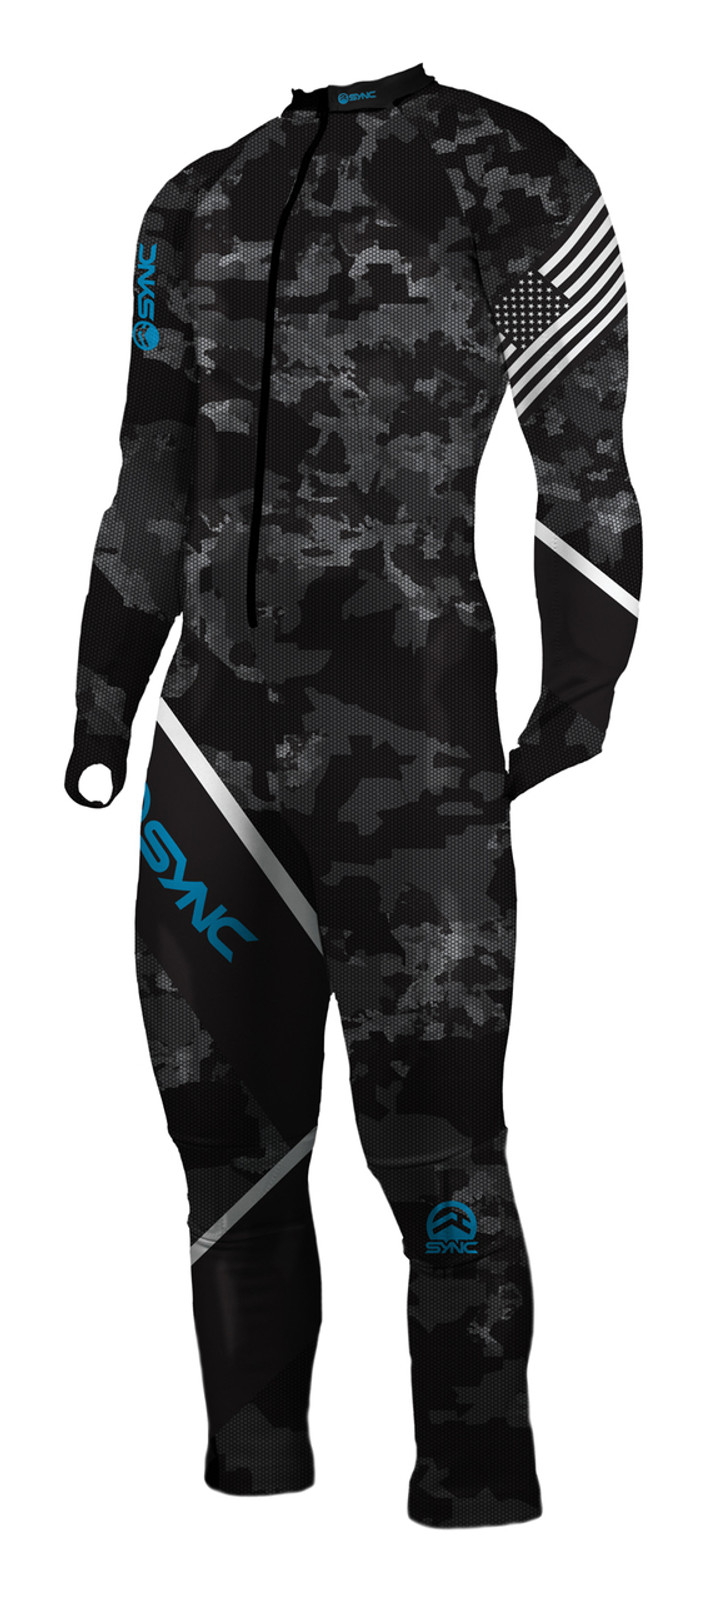 Sync National JR GS Race Suit (Stealth / Blue)